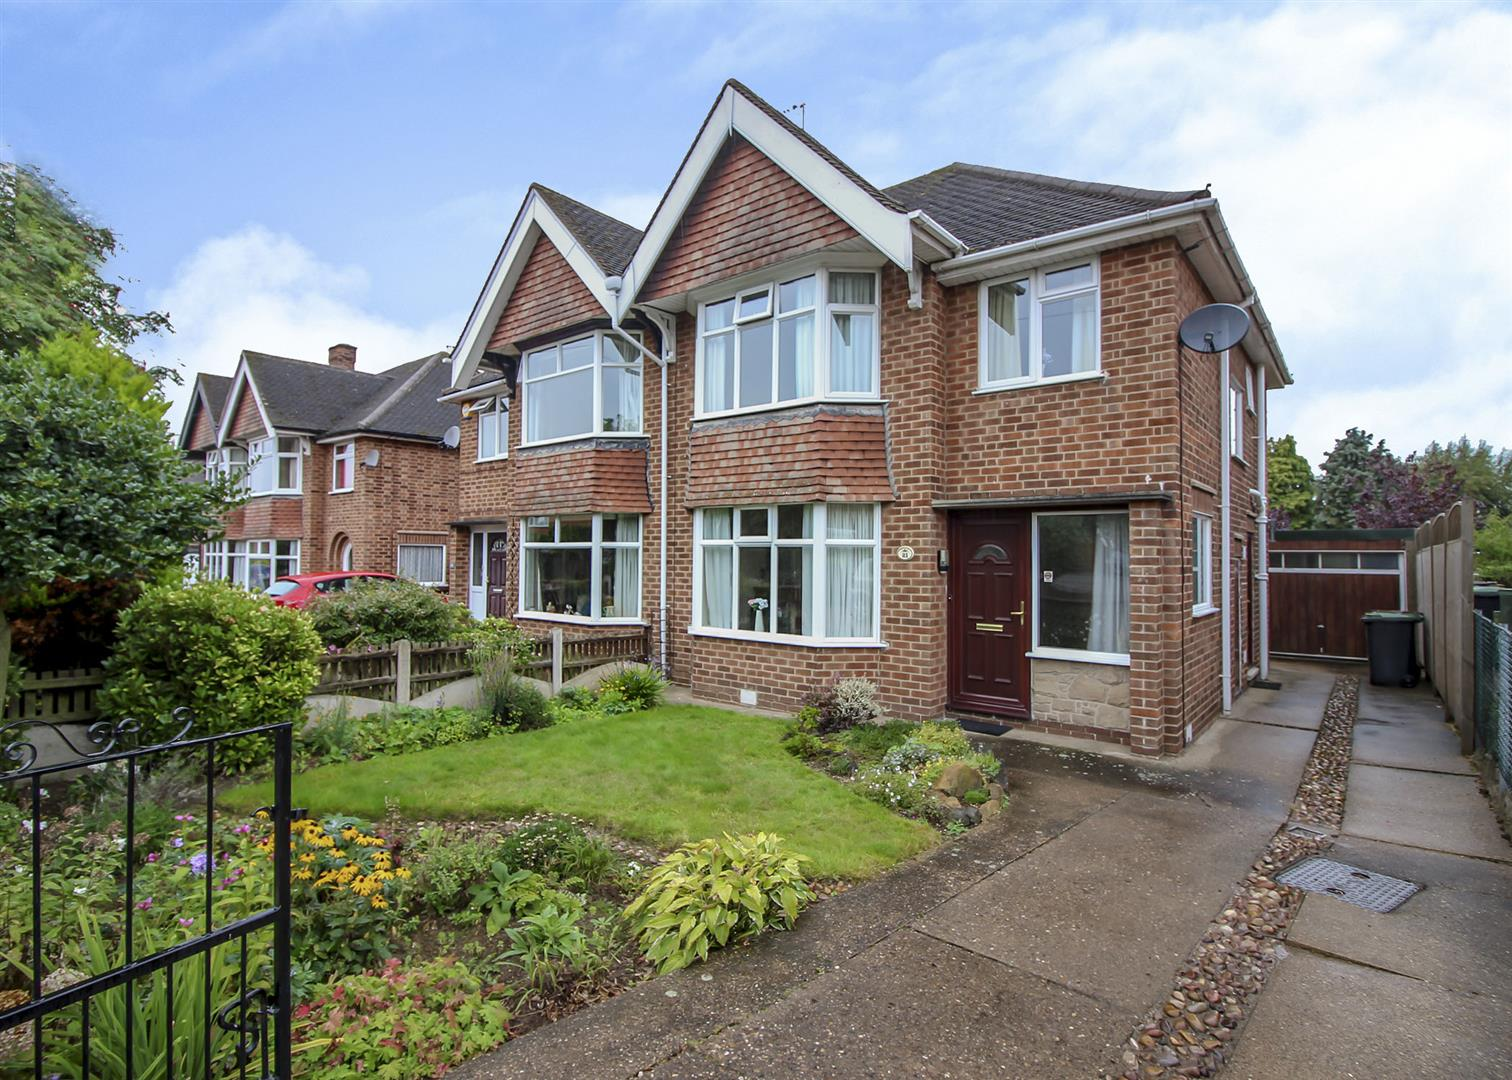 3 Bedrooms Semi Detached House for sale in Russley Road, Bramcote, Nottingham